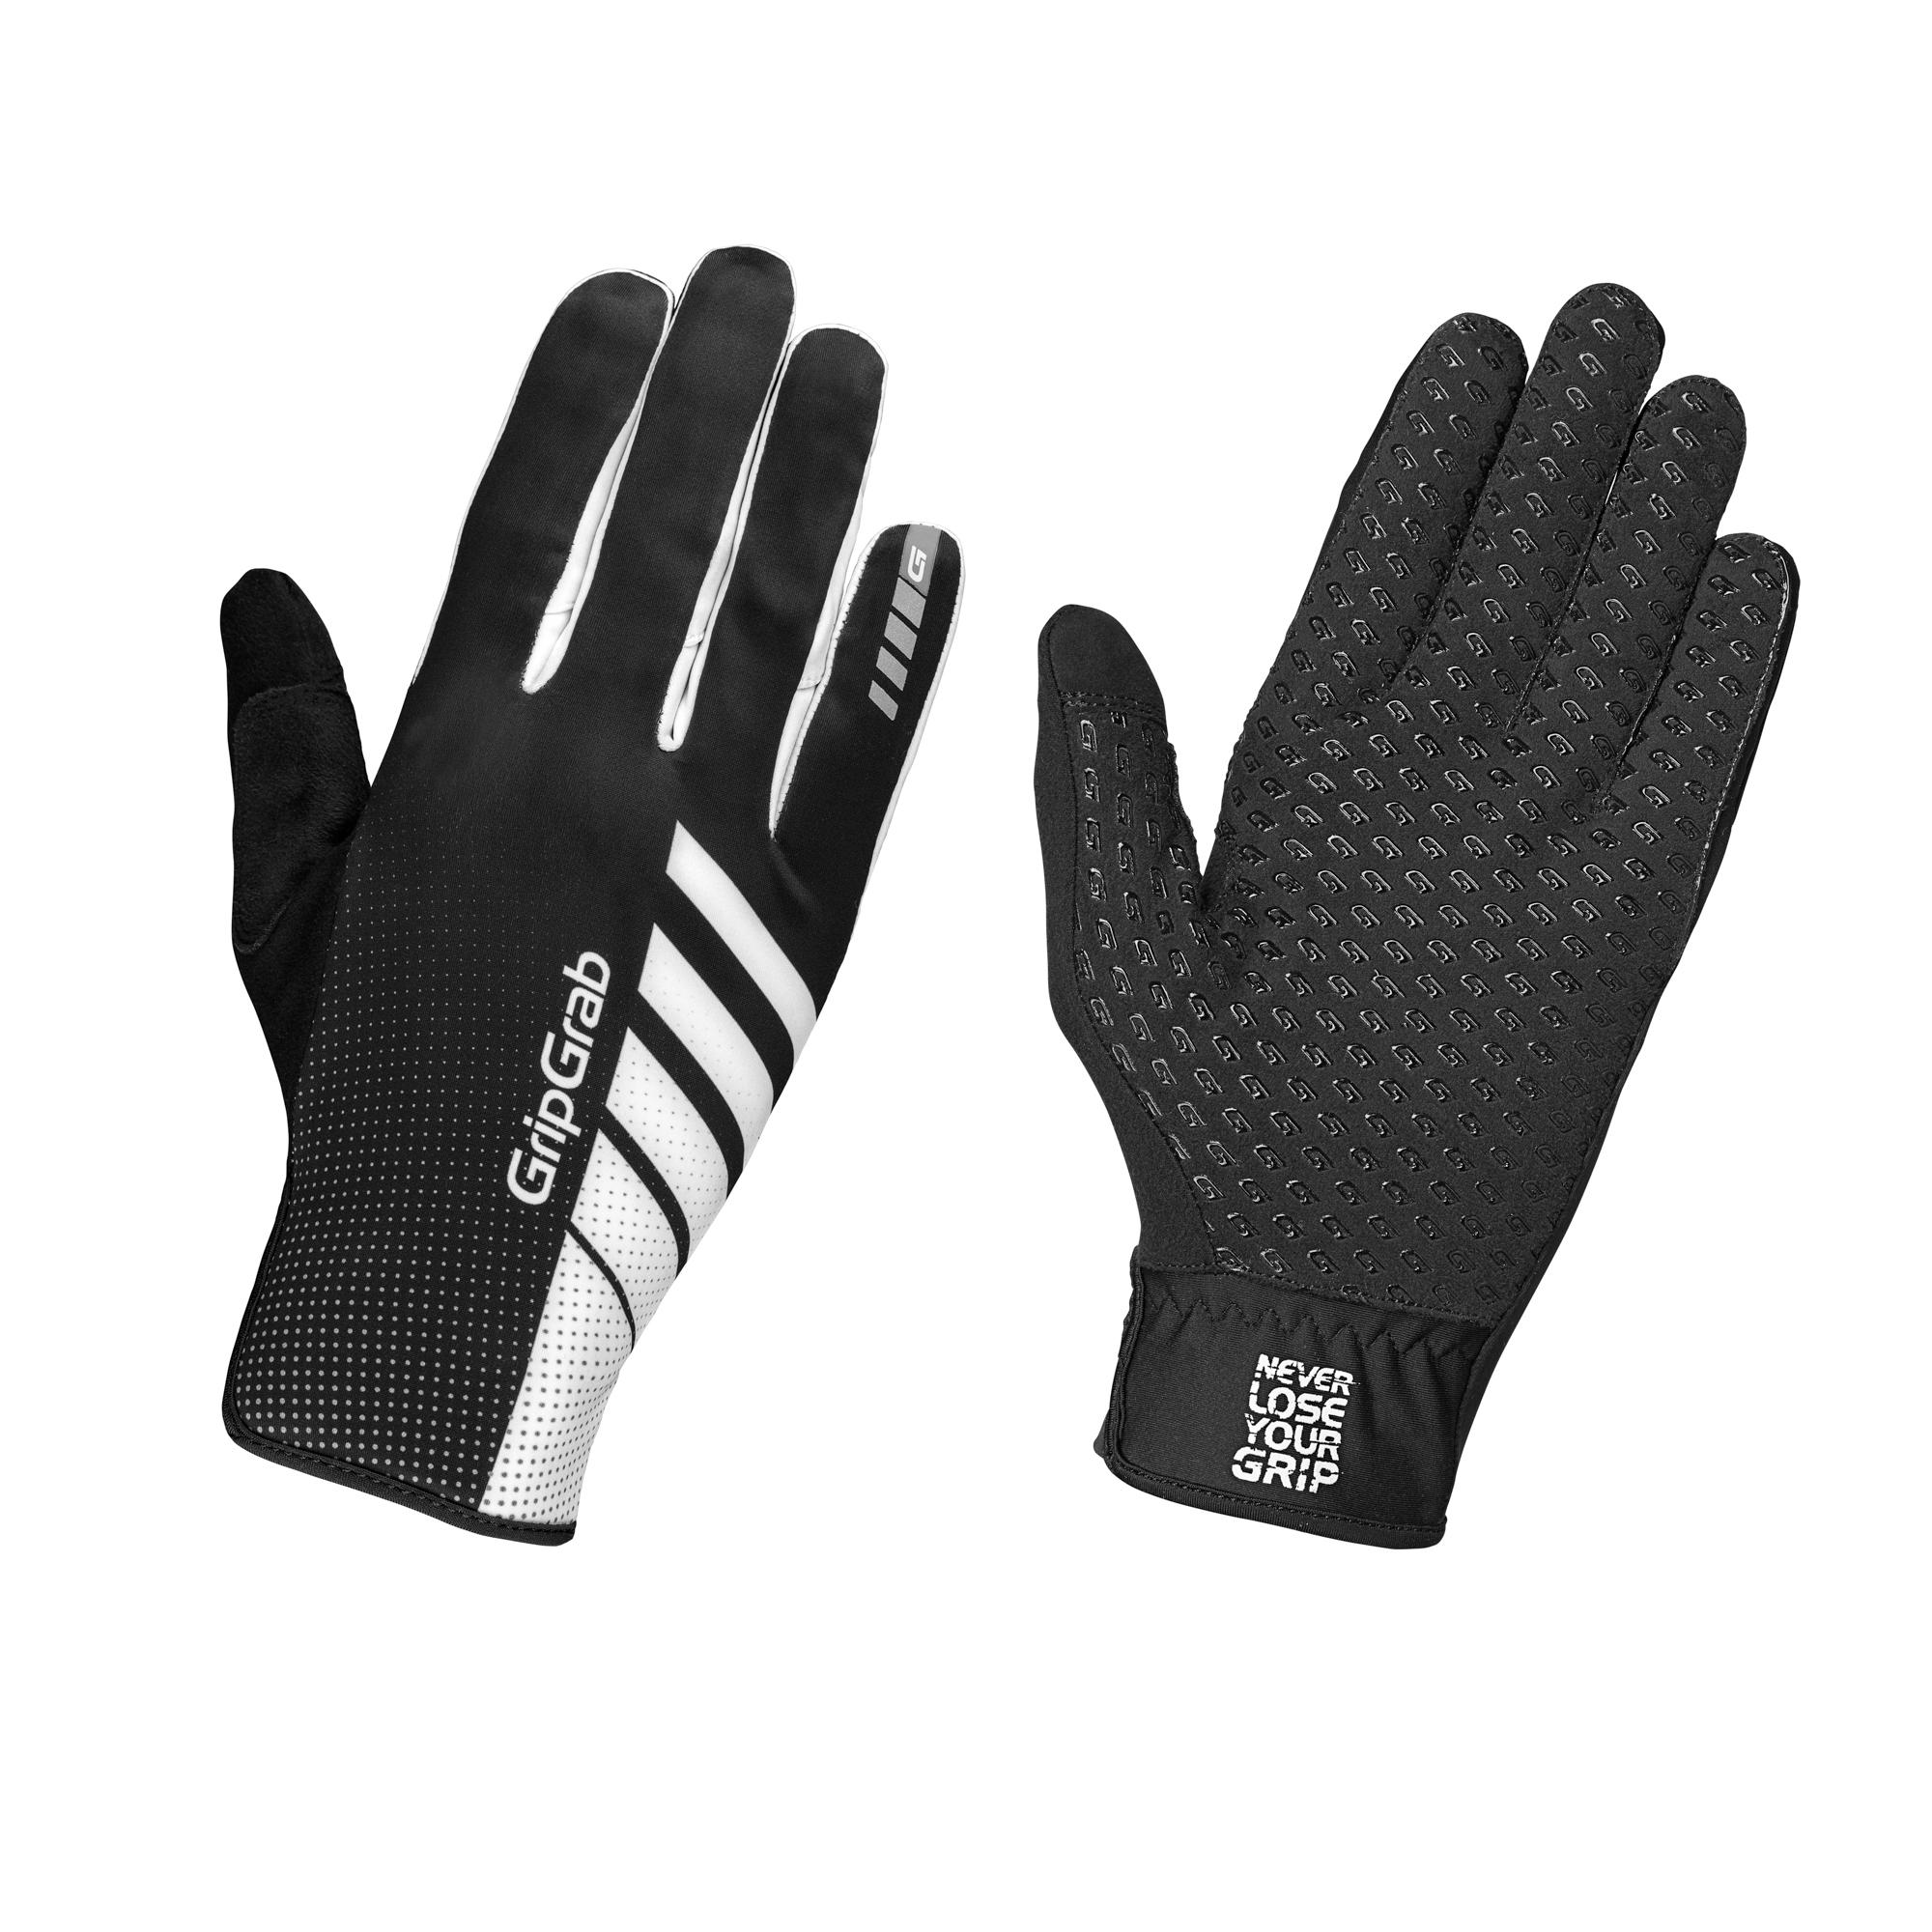 Afbeelding GripGrab Fietshandschoenen Winter Unisex Zwart Wit - Raptor Windproof Raceday Glove Black White